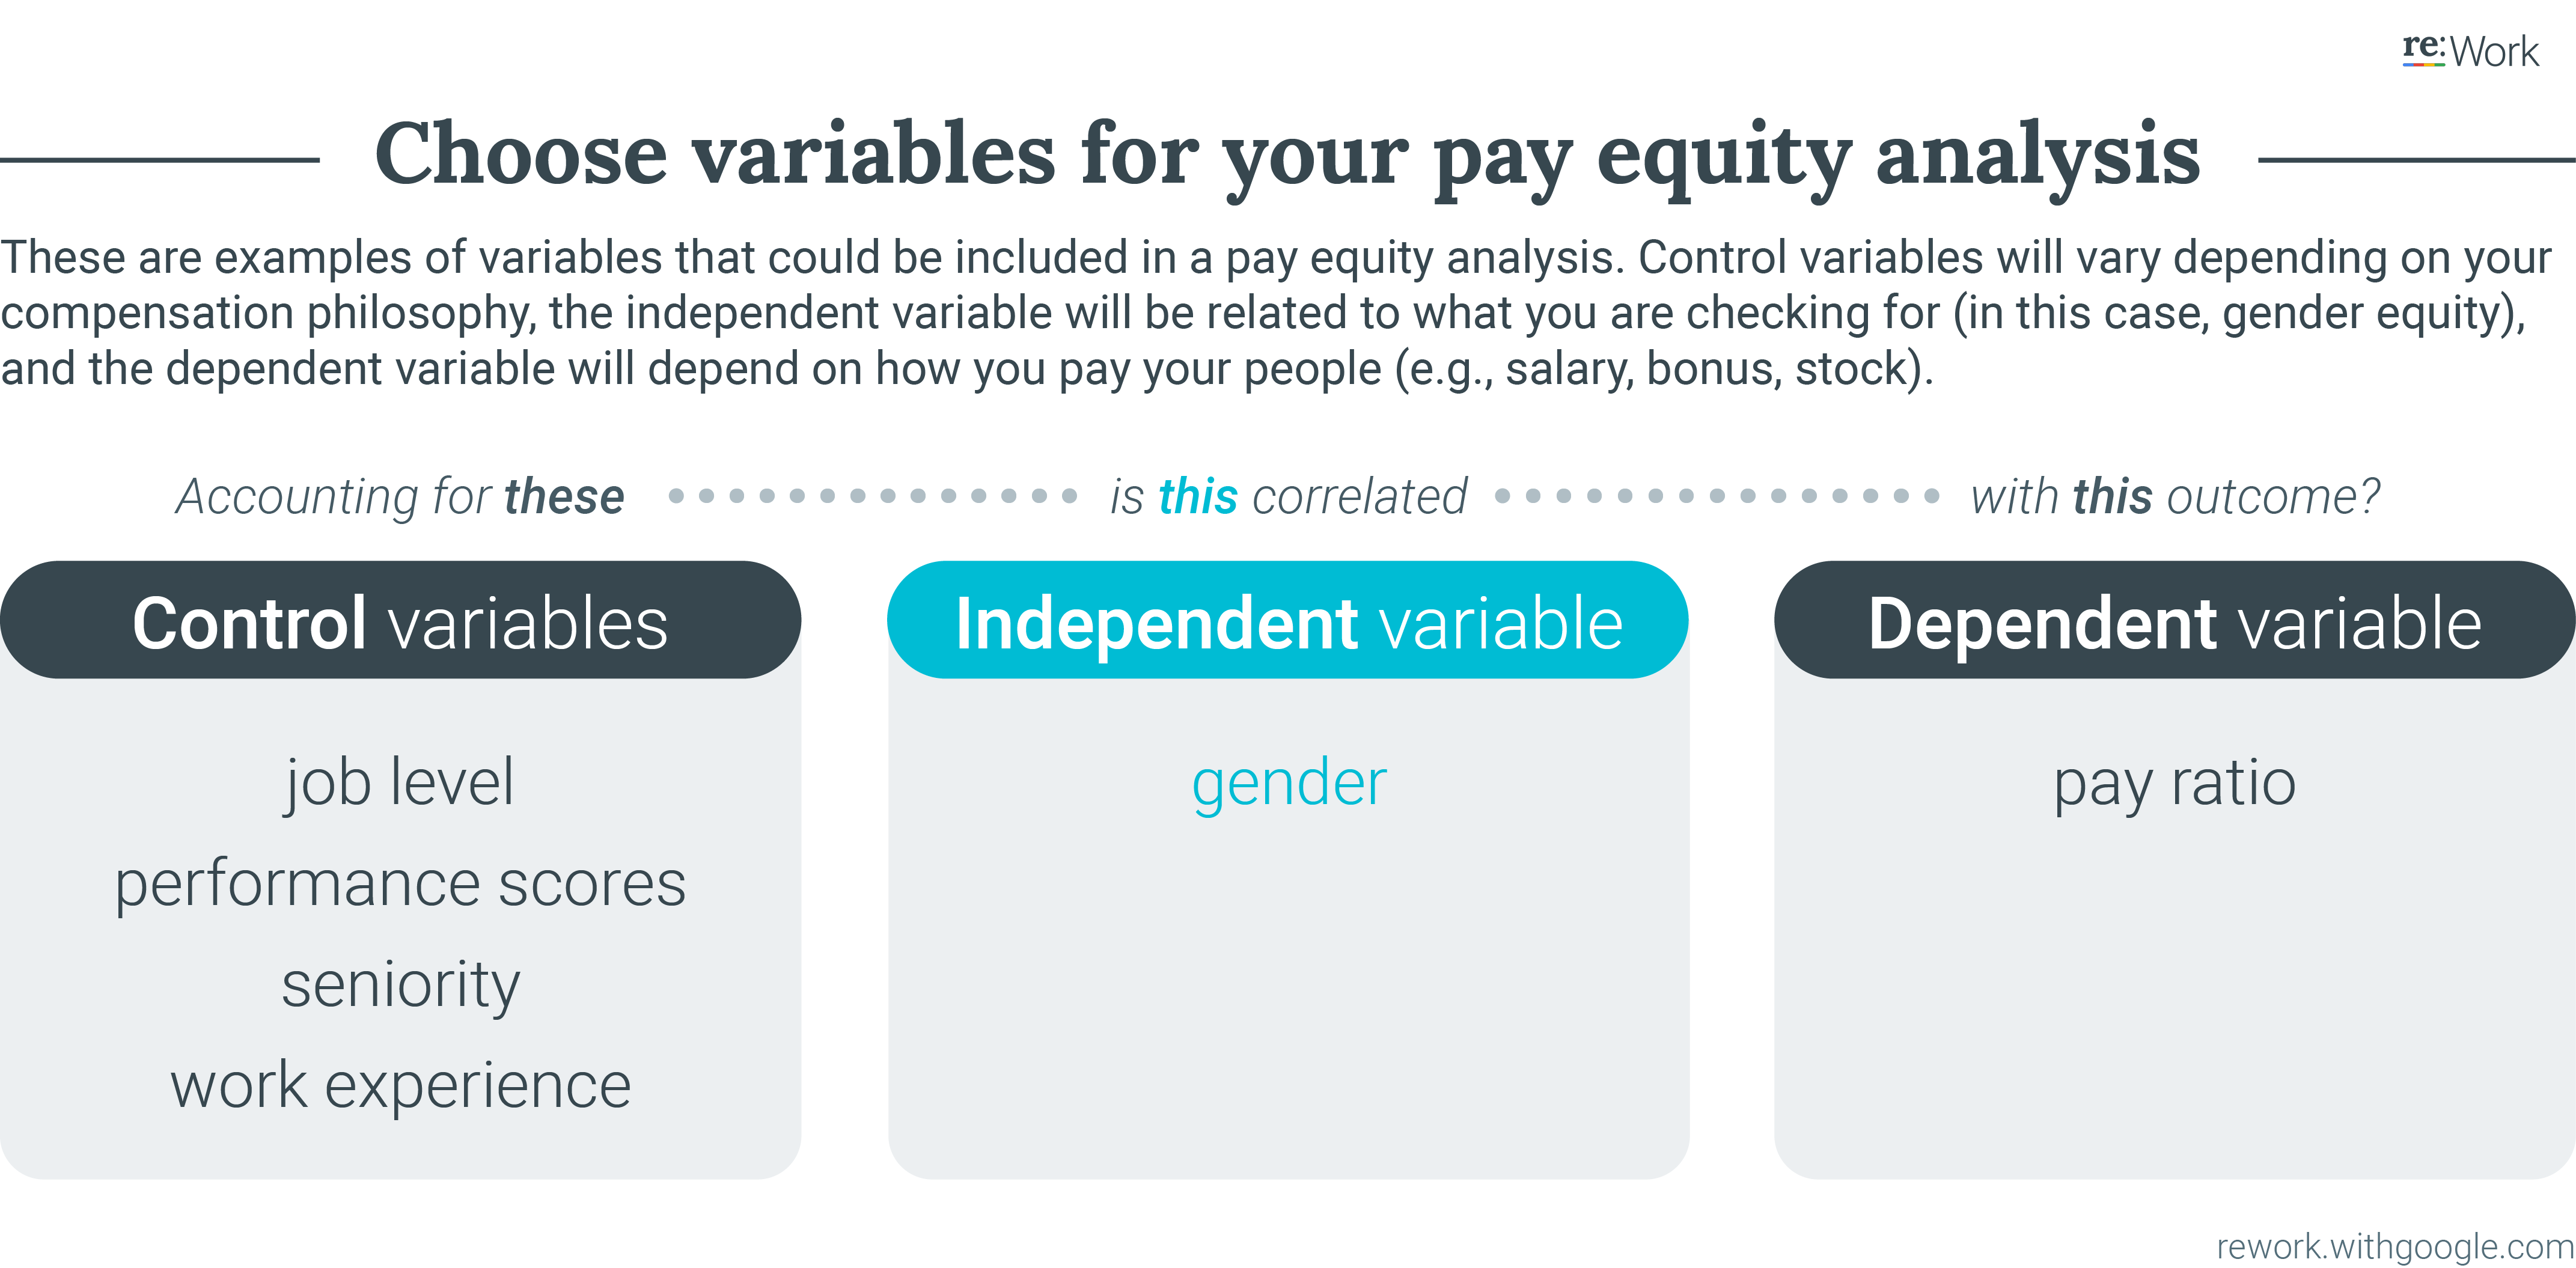 Choose variables for your pay equity analysis. These are examples of variables that could be included in a pay equity analysis. Control variables will vary depending on your compensation philosophy, the independent variable will be related to what you are checking for (in this case, gender equity), and the dependent variable will depend on how you pay your people (e.g., salary, bonus, stock). Control variables: job level, performance scores, seniority, work experience. Independent variable: gender. Dependent variable: pay ratio.